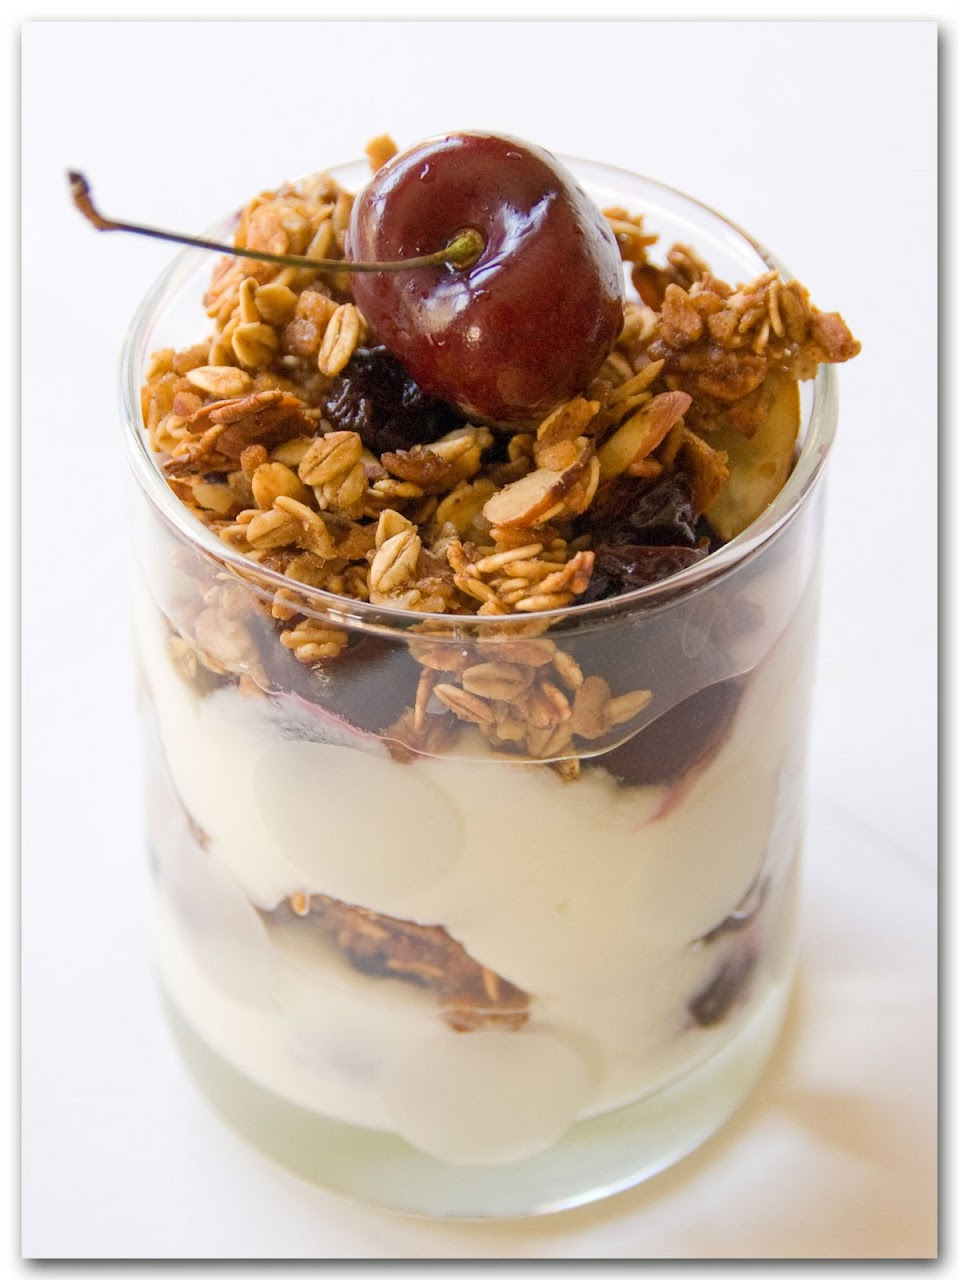 Granola with cherries